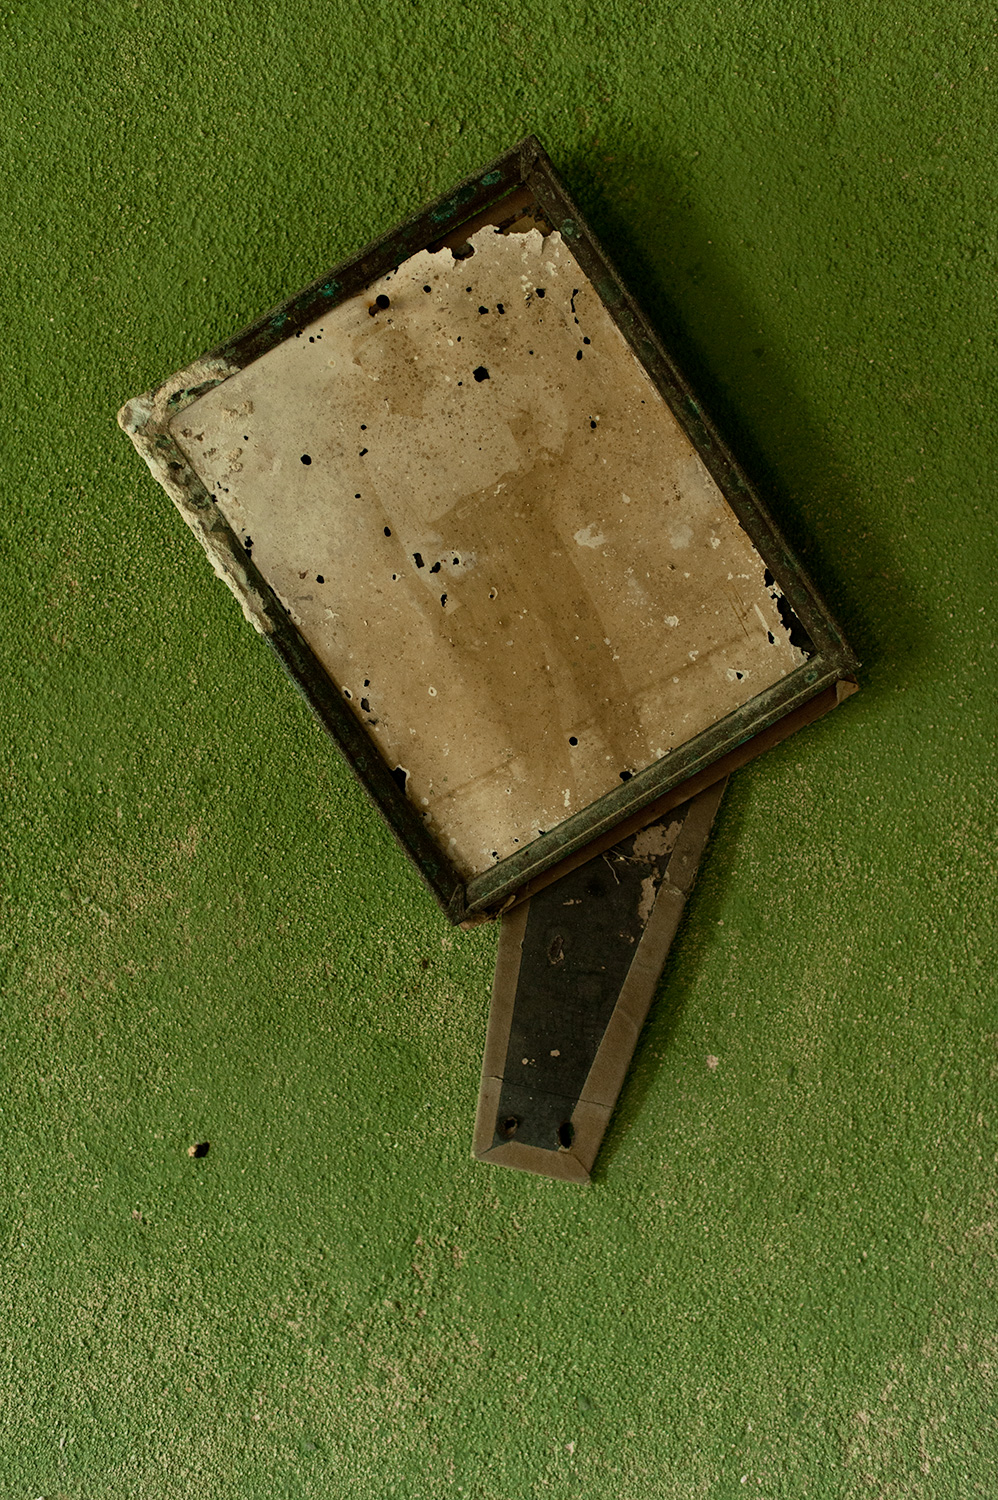 160210_photograph_on_the_wall_of_an_abandoned_home_1406.jpg